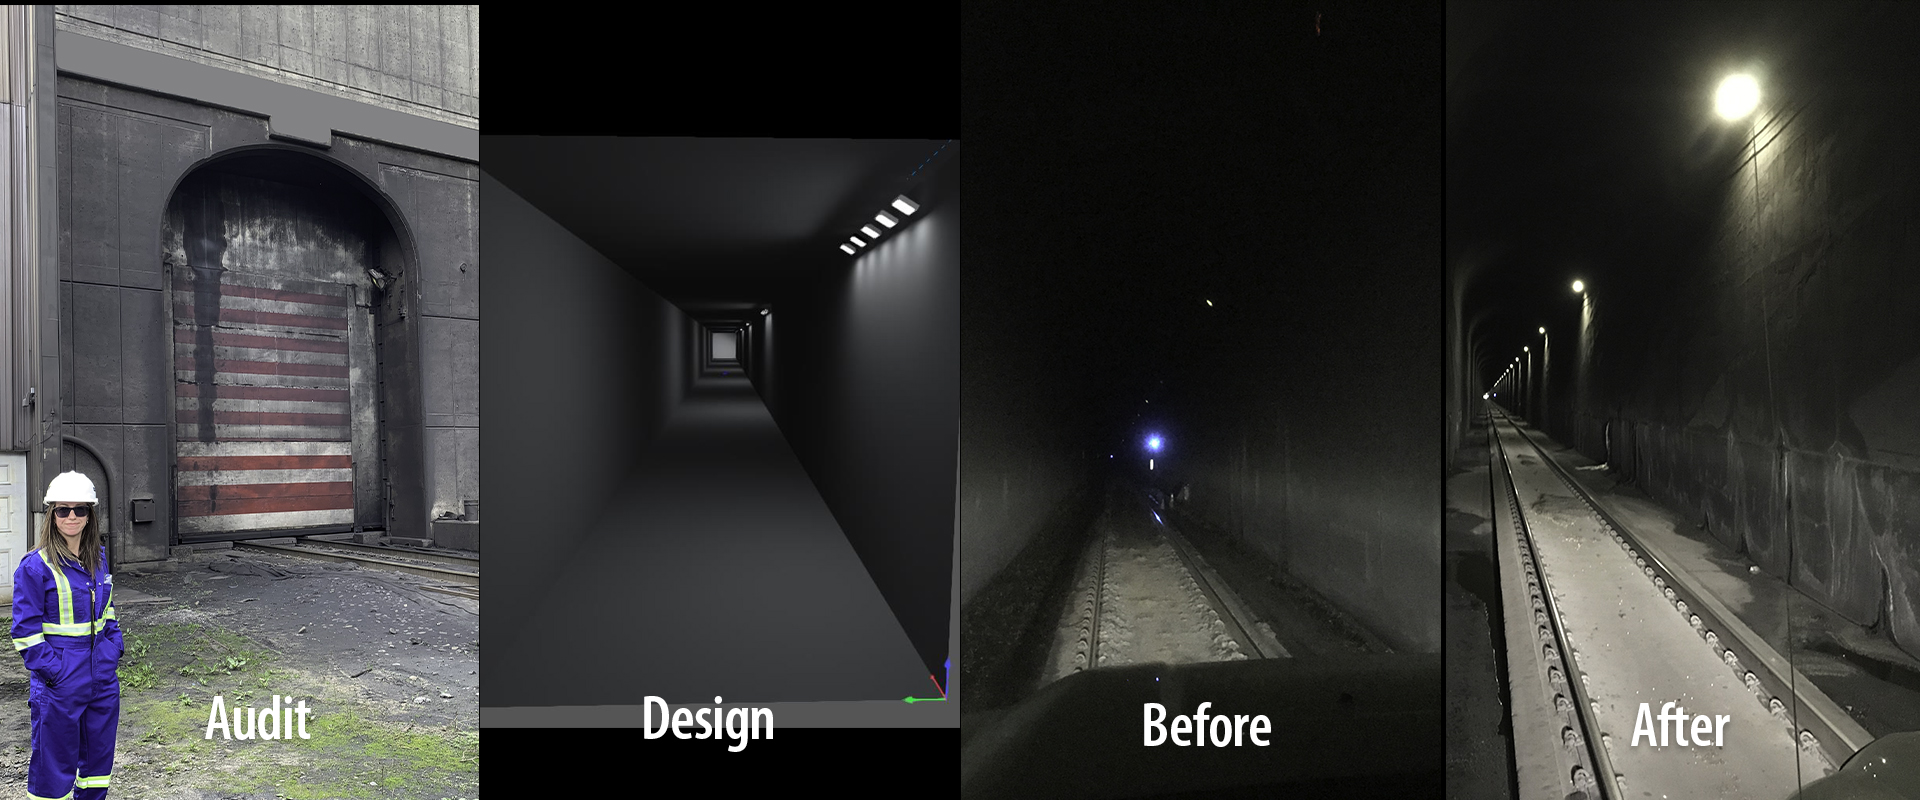 Nemalux consulted to a major national railway to improve its tunnel lighting through the Canadian Rocky Mountains. A lighting audit provided detailed information to build a detailed lighting layout simulation, which helped the customer to decide on the MR Series industrial LED luminaire.